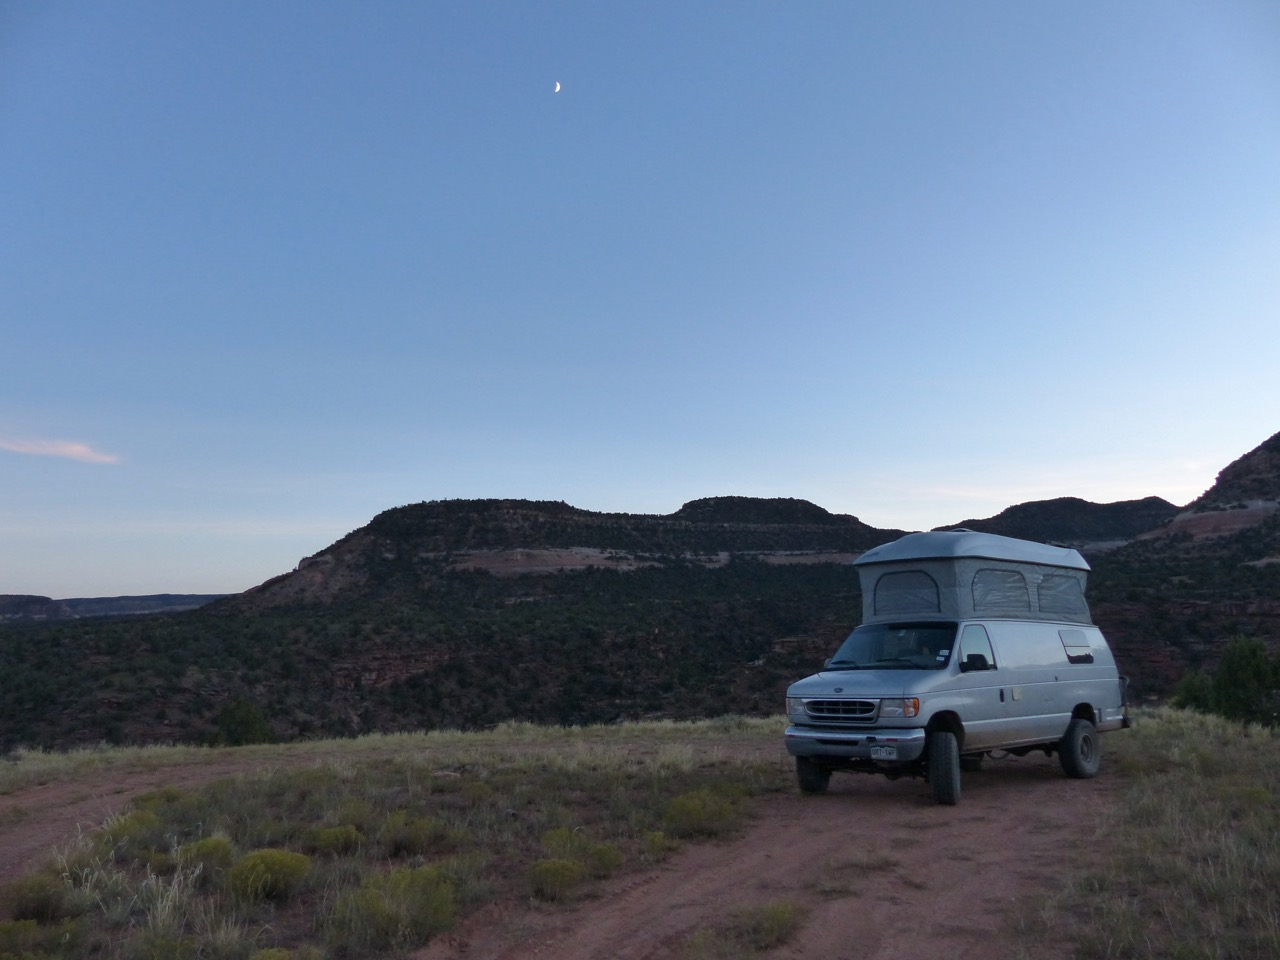 Finding a secluded campsite is no problem. And for star gazers, the skies don't get much darker.